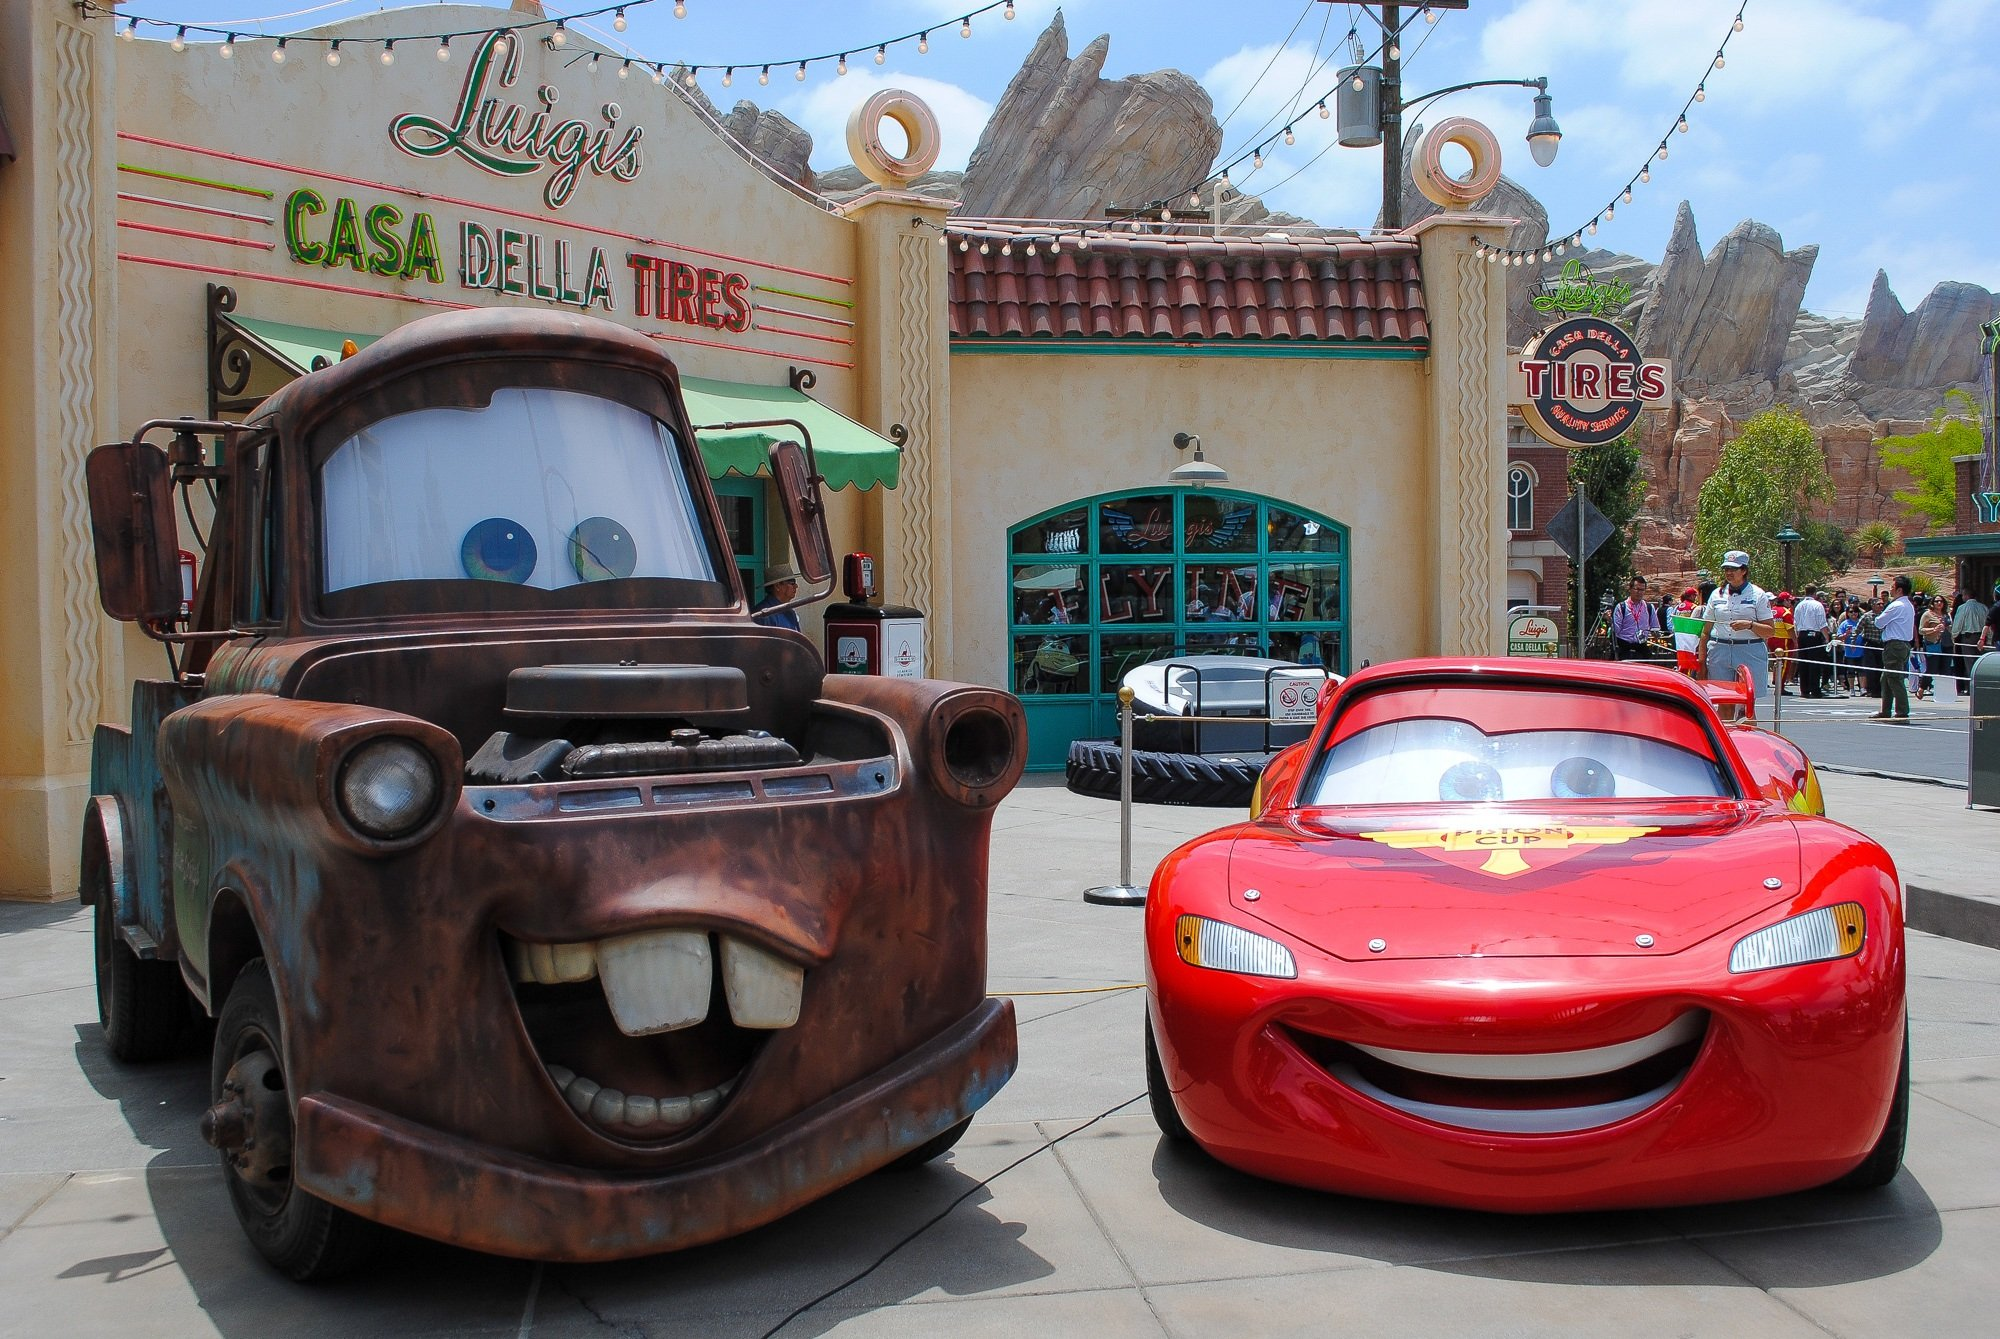 Tow Mater and Lightning McQueen in Radiator Springs Cars Land theme park